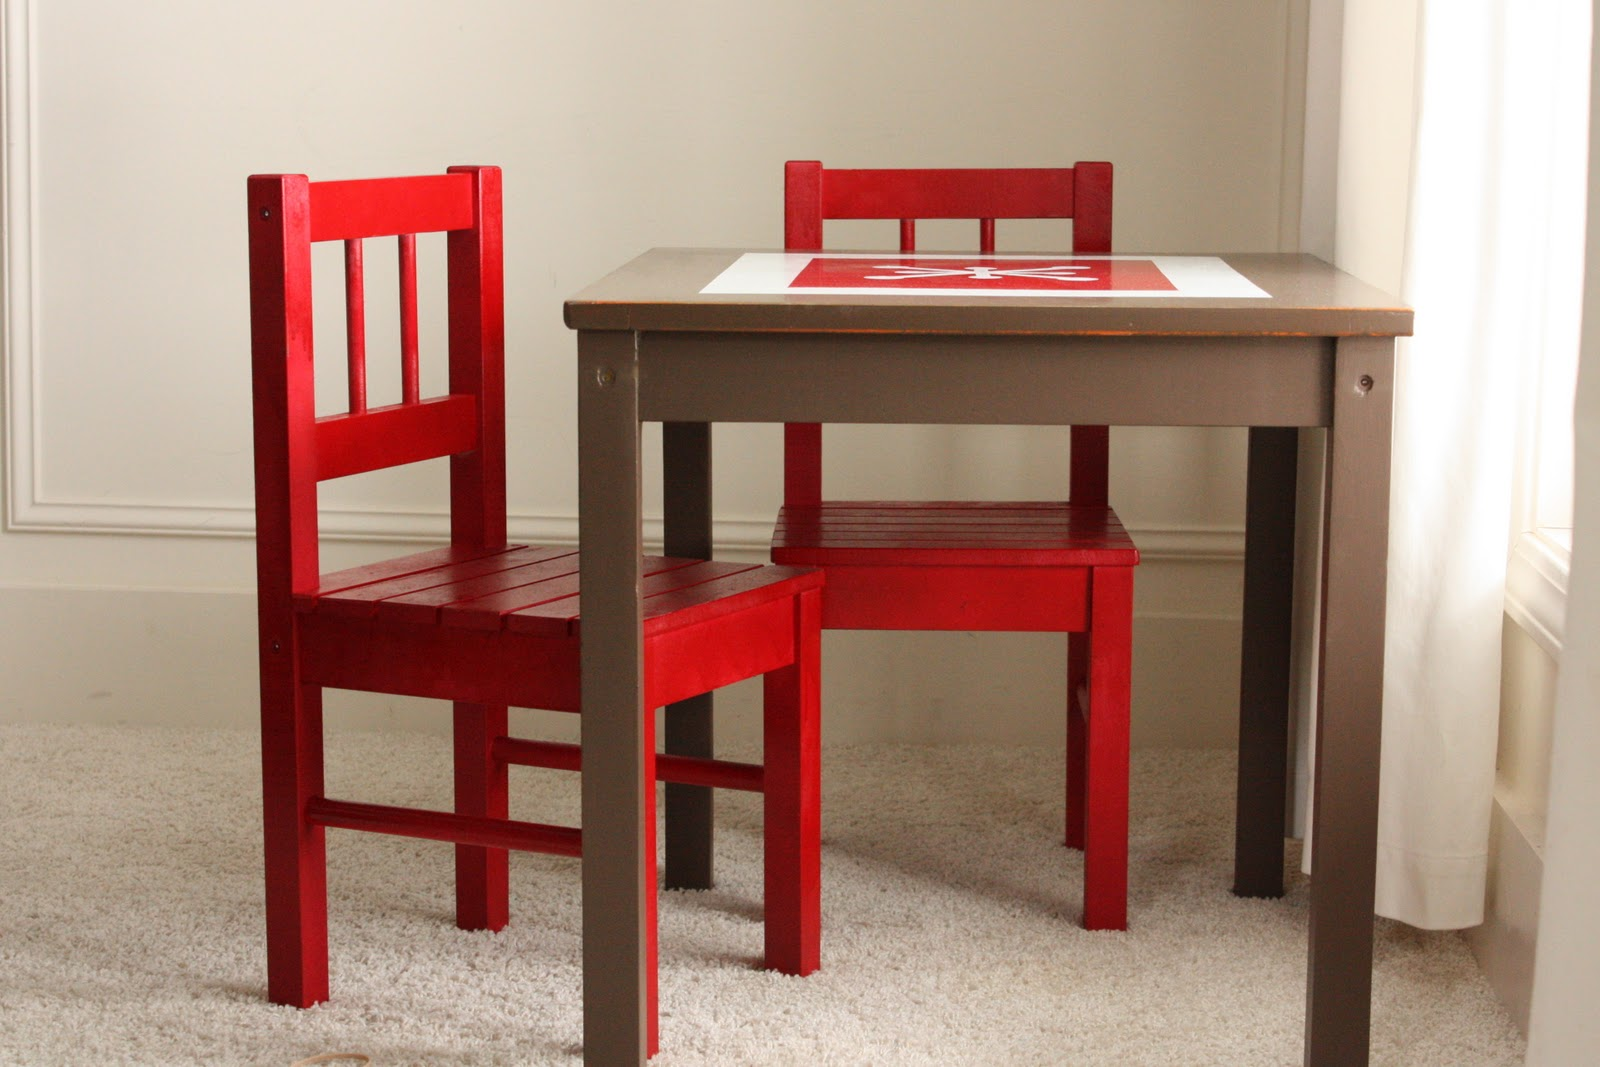 Fabulous I found this little table and chair set at the Goodwill It us a nice set from IKEA that someone tried to paint